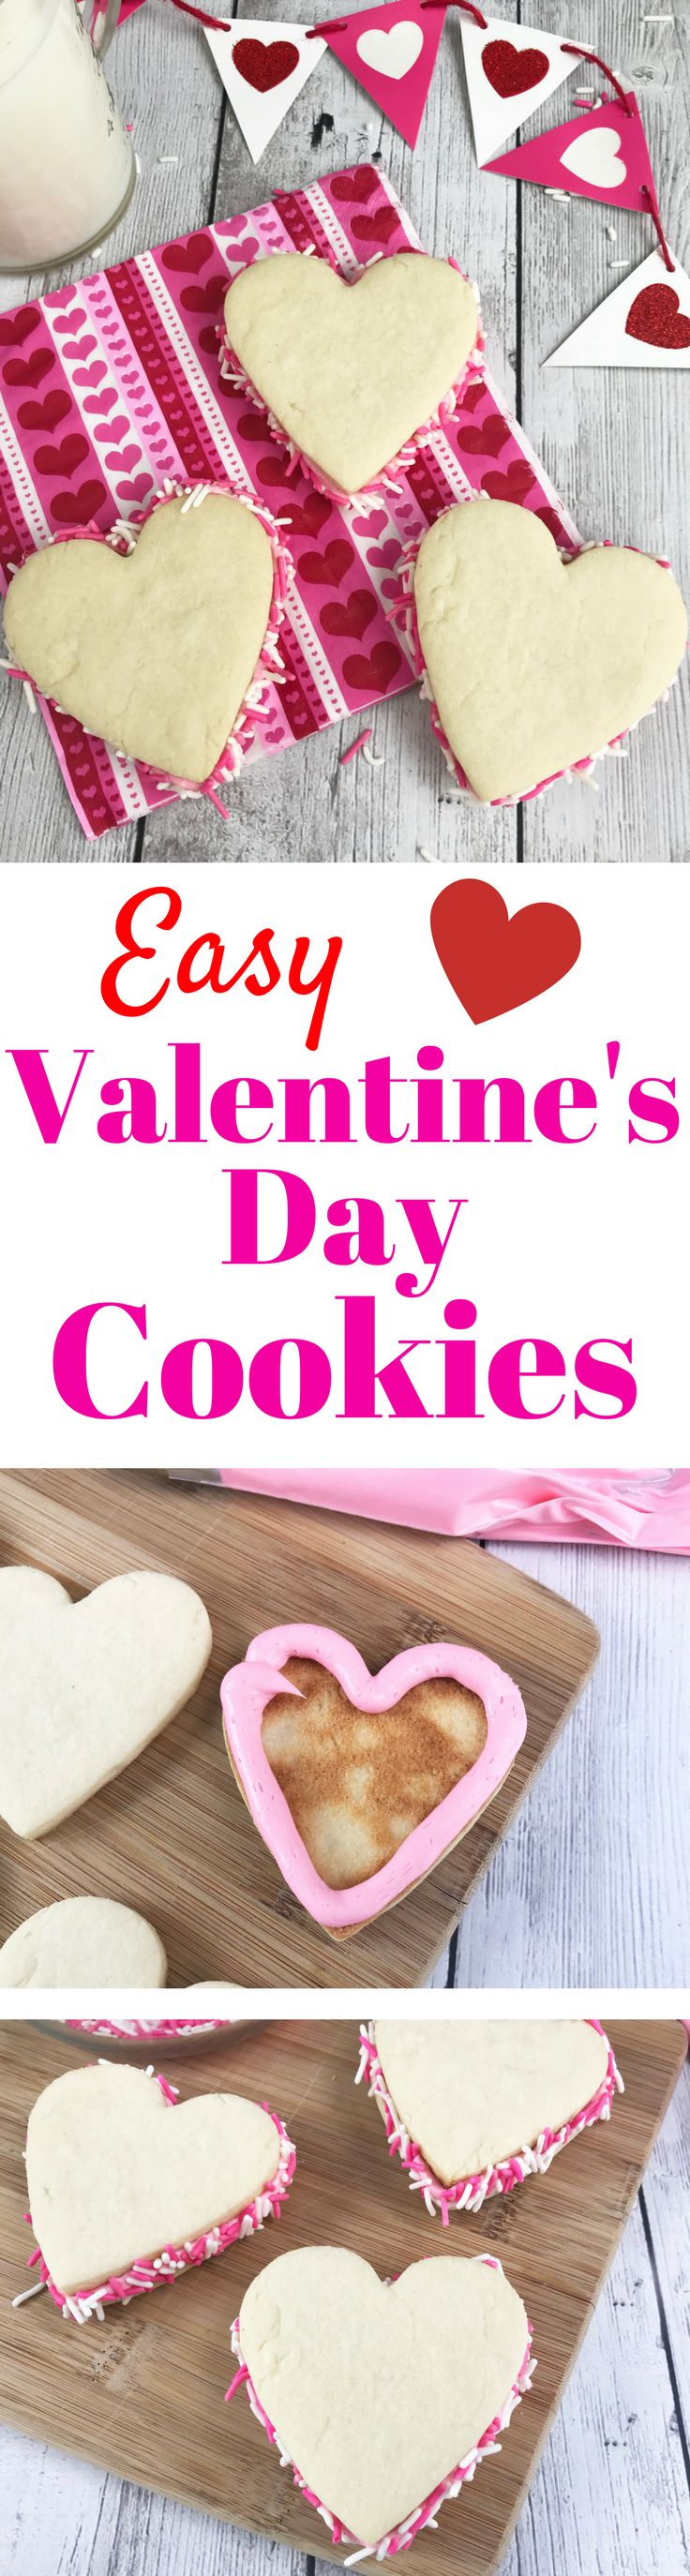 Easy Valentine's Day Sandwich Cookies - Perfect for a Kid's Party.  #ValentinesDay #Valentines #Baking